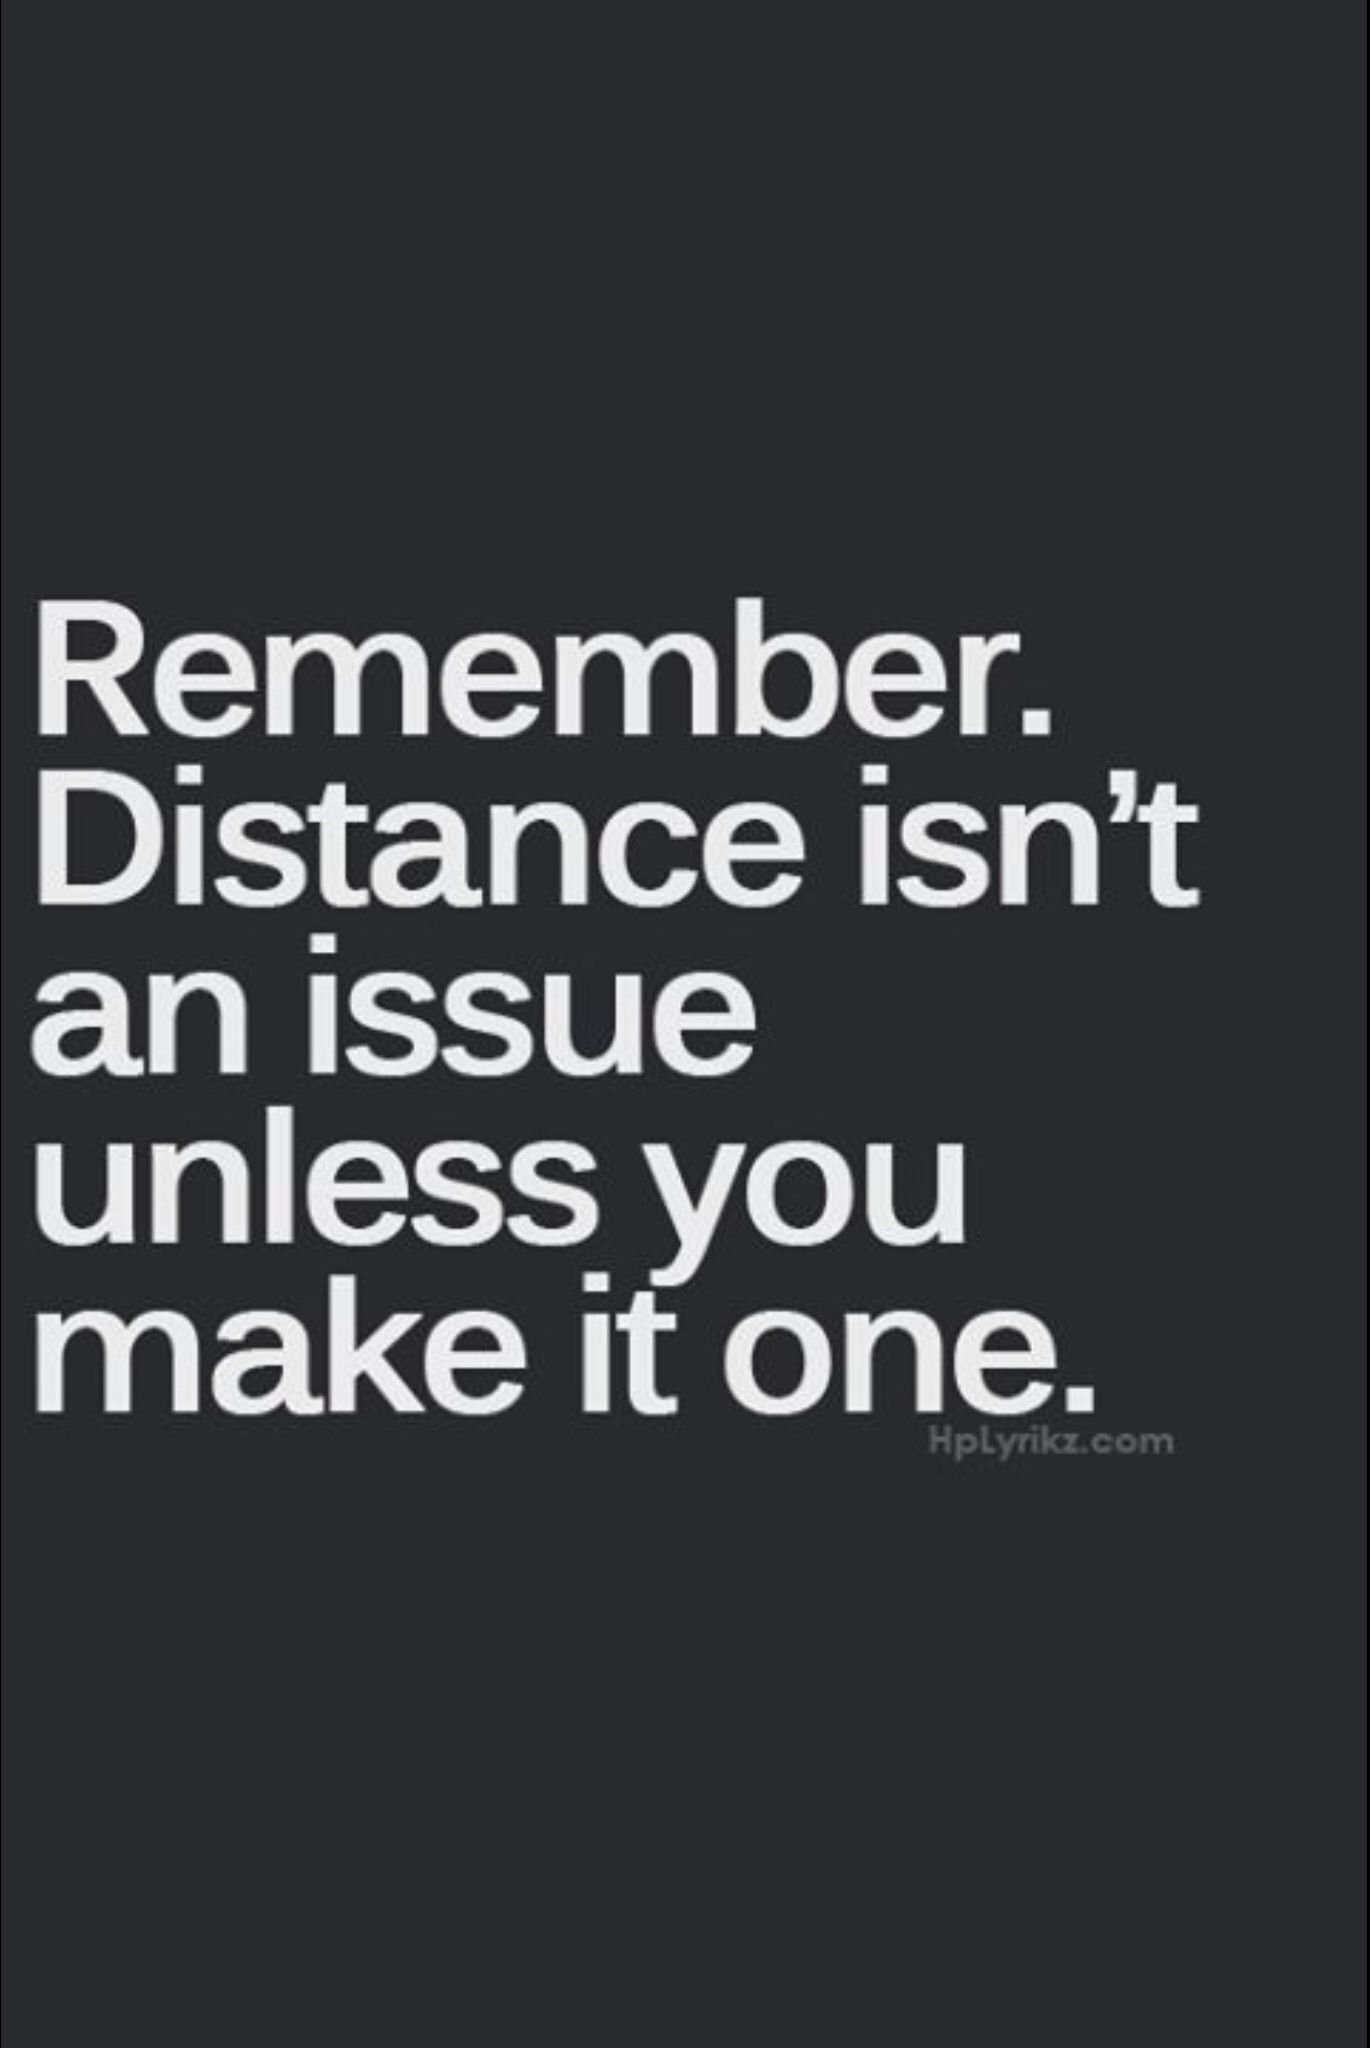 Quotes About Friendship And Distance Pinsara Bell On Relatable Words  Pinterest  Friendship And